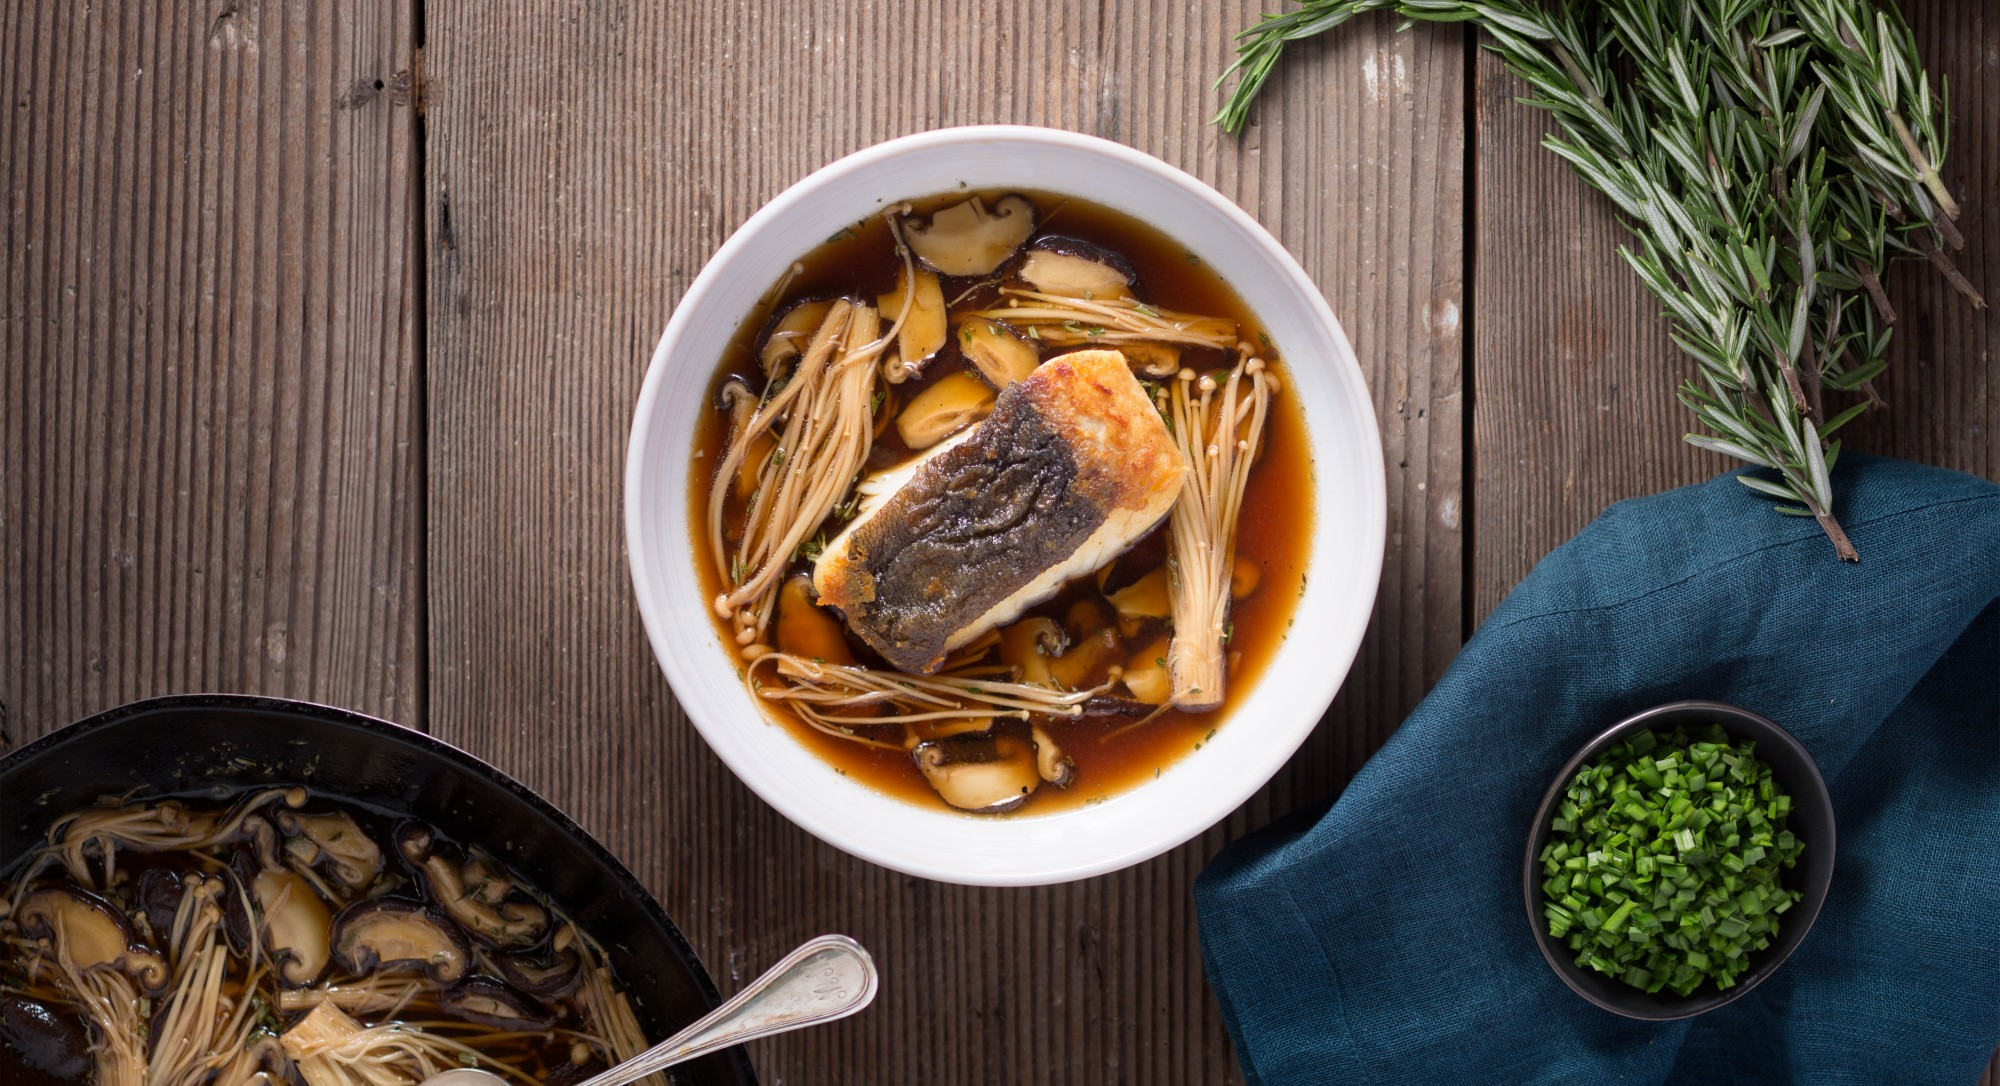 This Peppery Ginger Broth Brings New Life to Simply Cooked Halibut